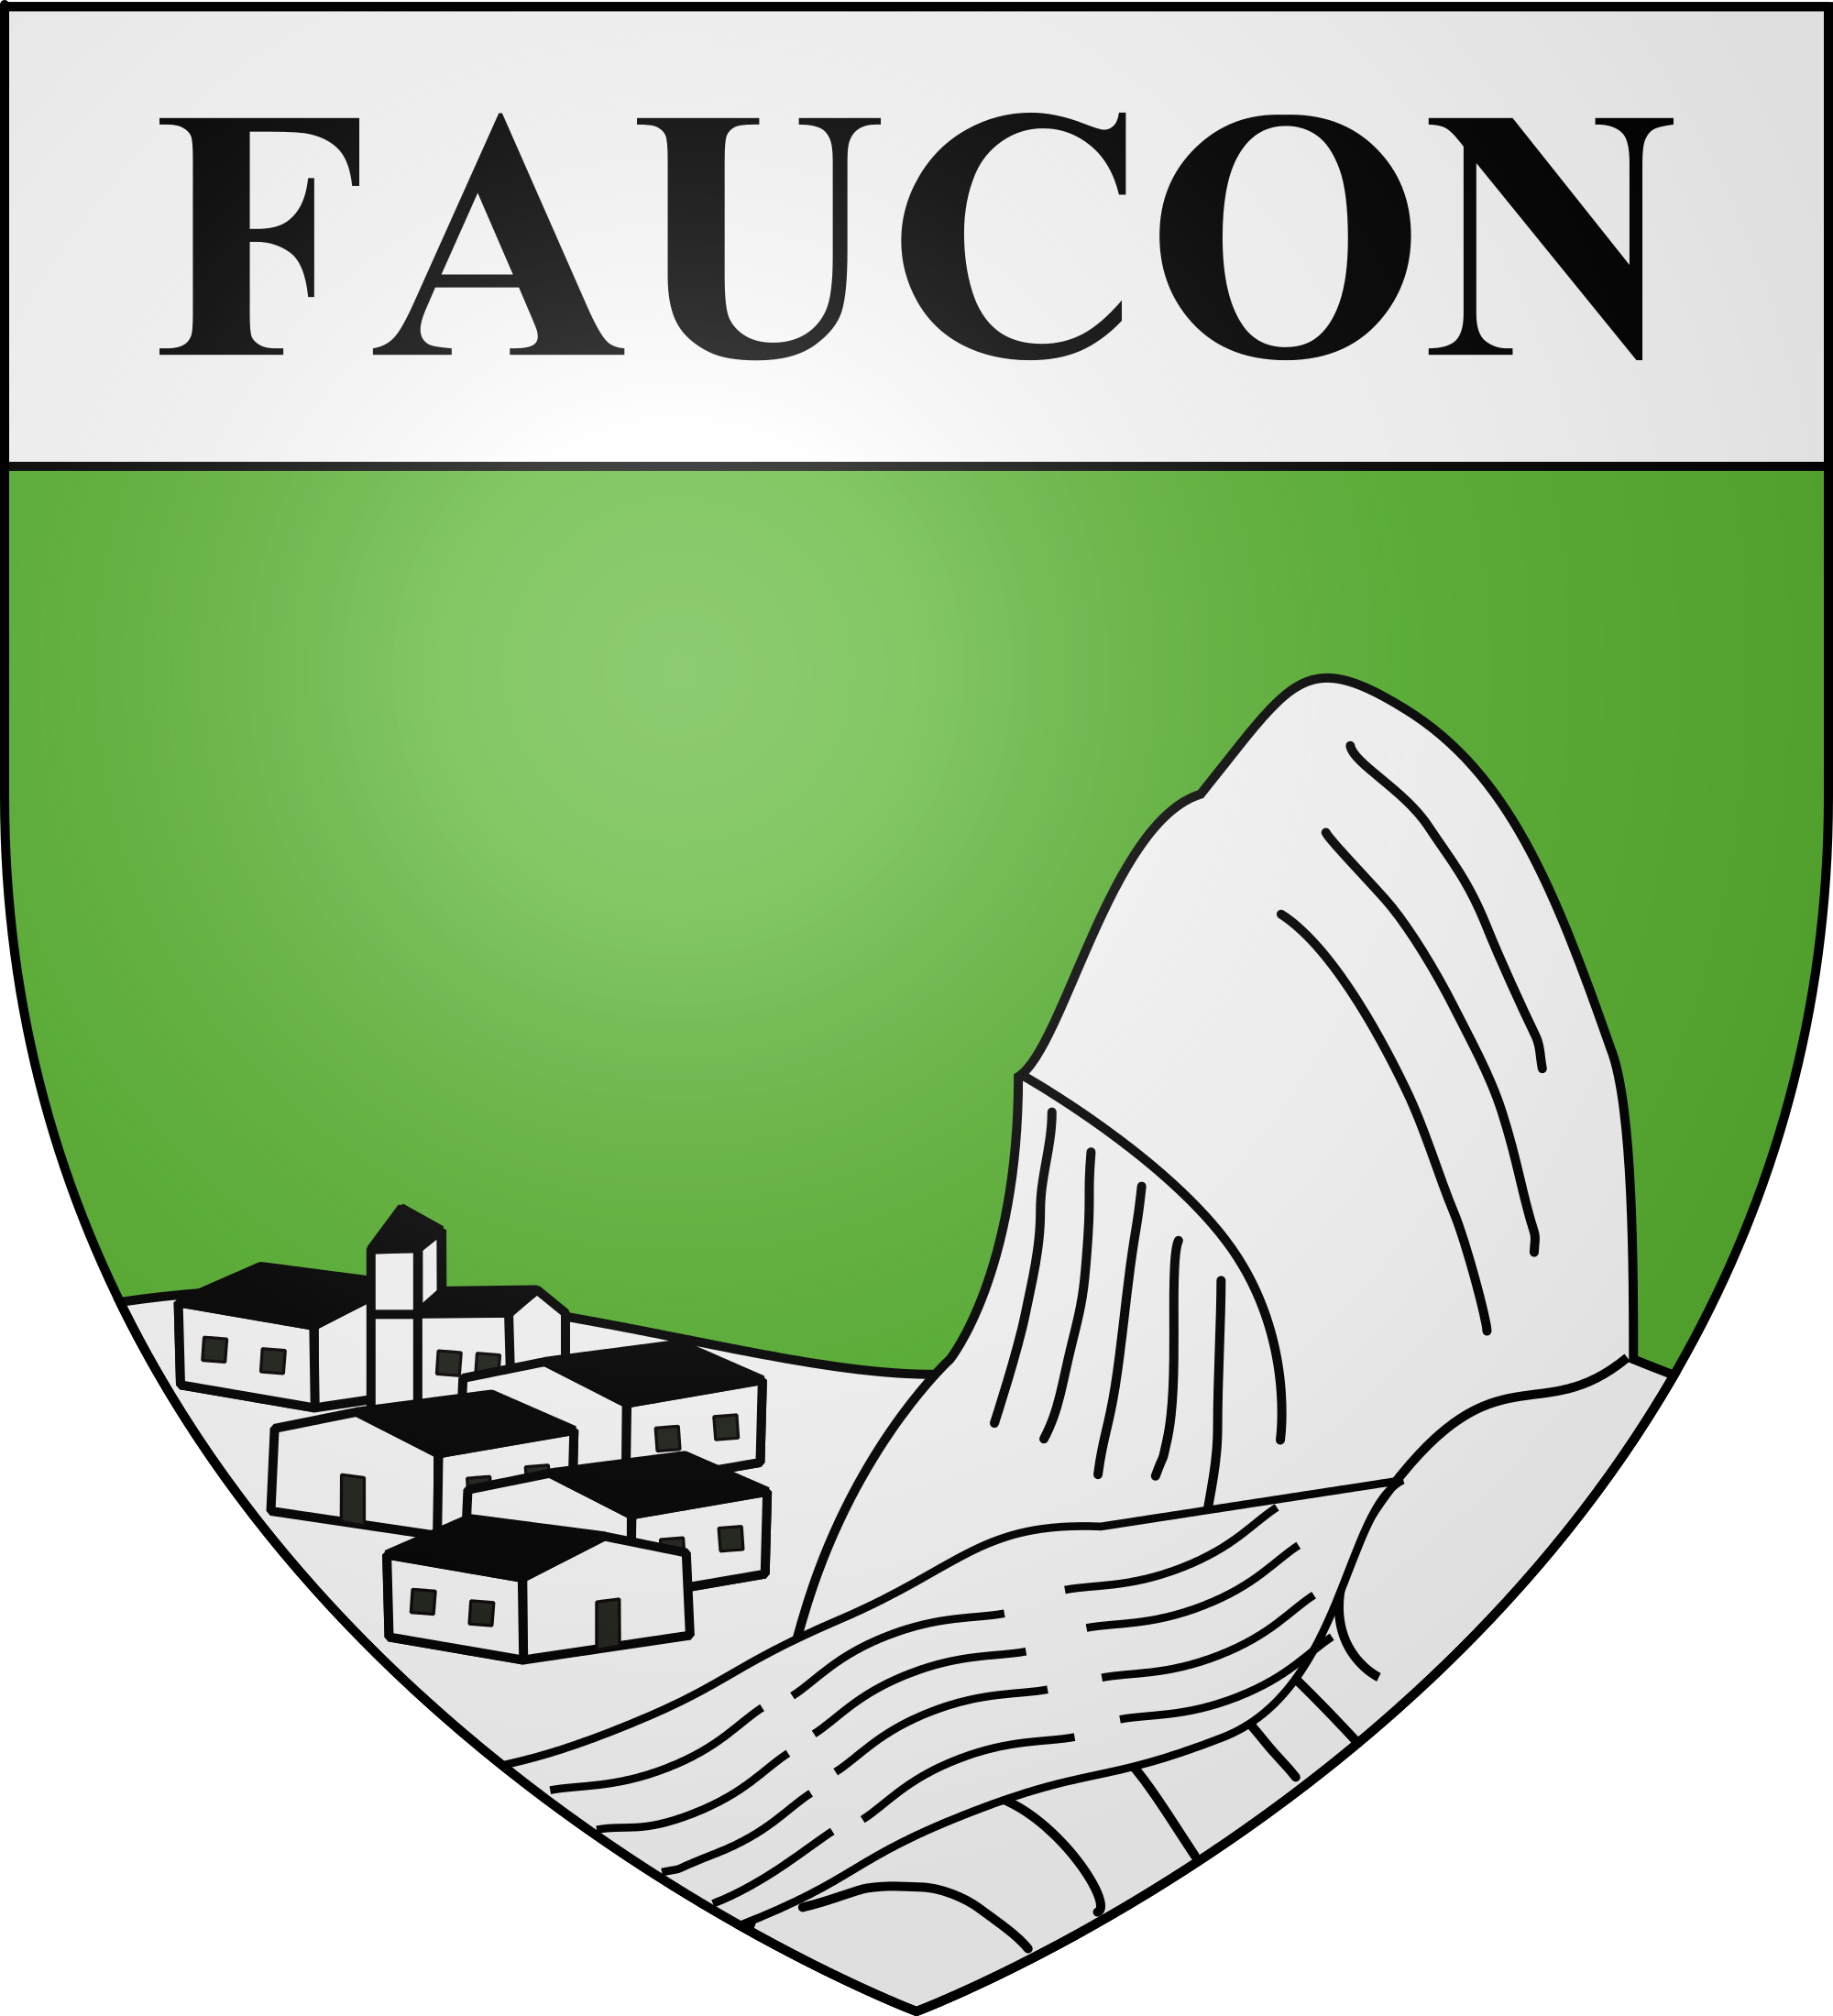 Faucon svg #15, Download drawings